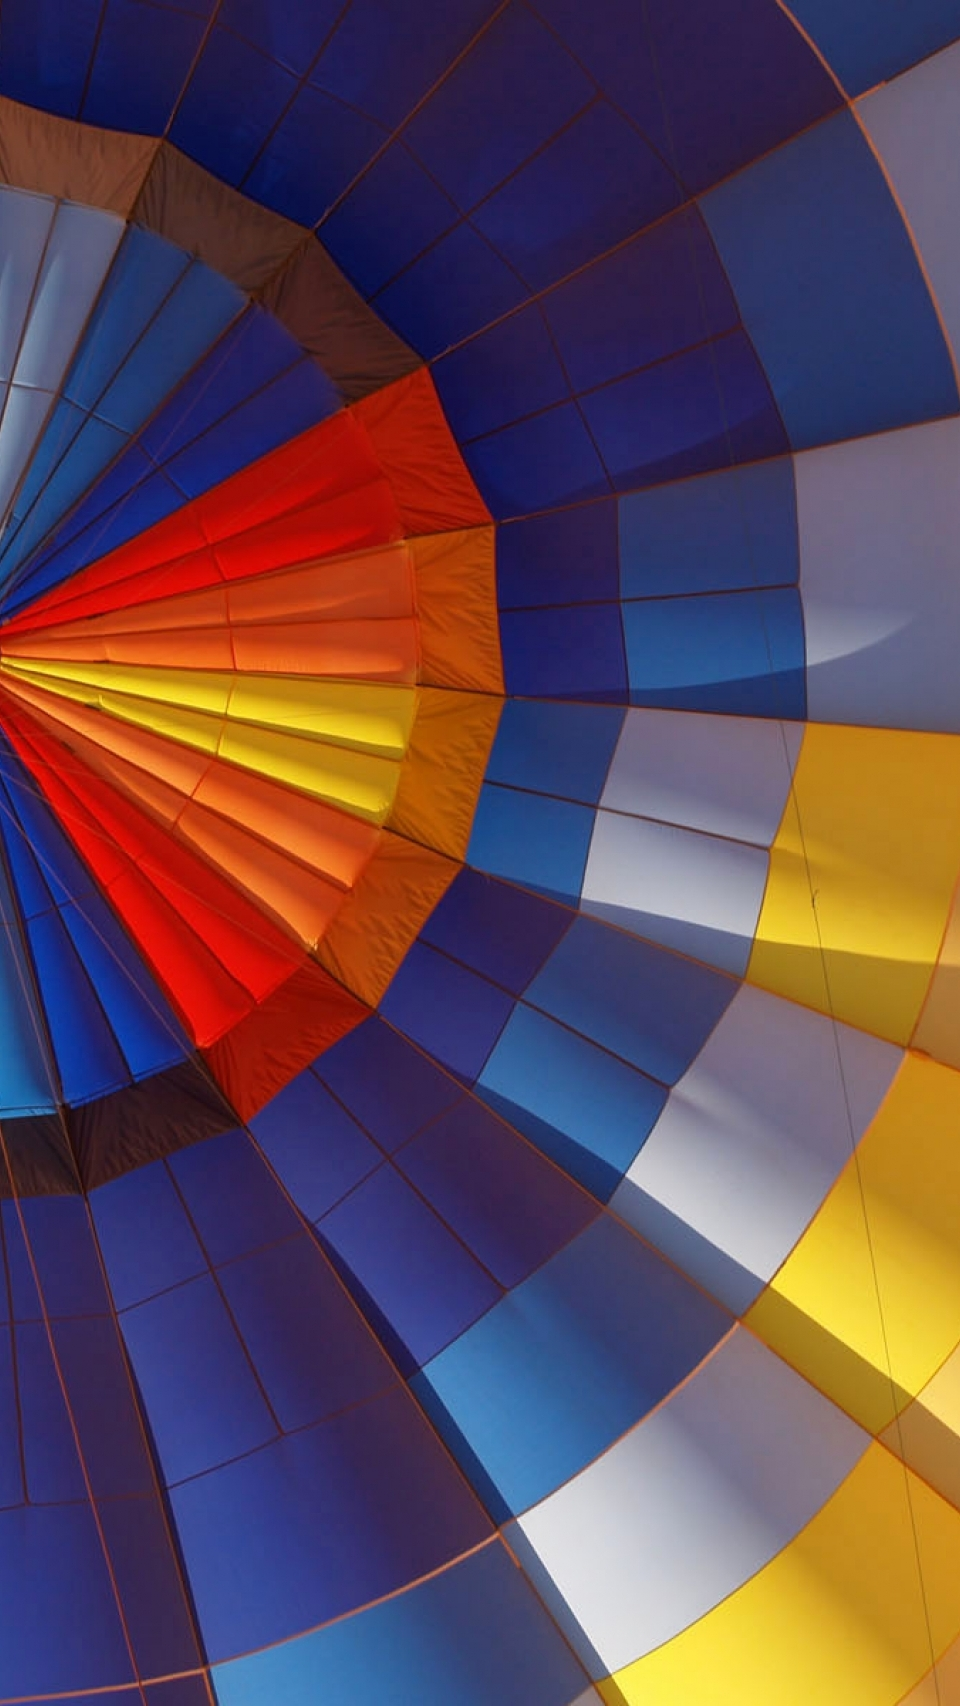 vibrant color photography